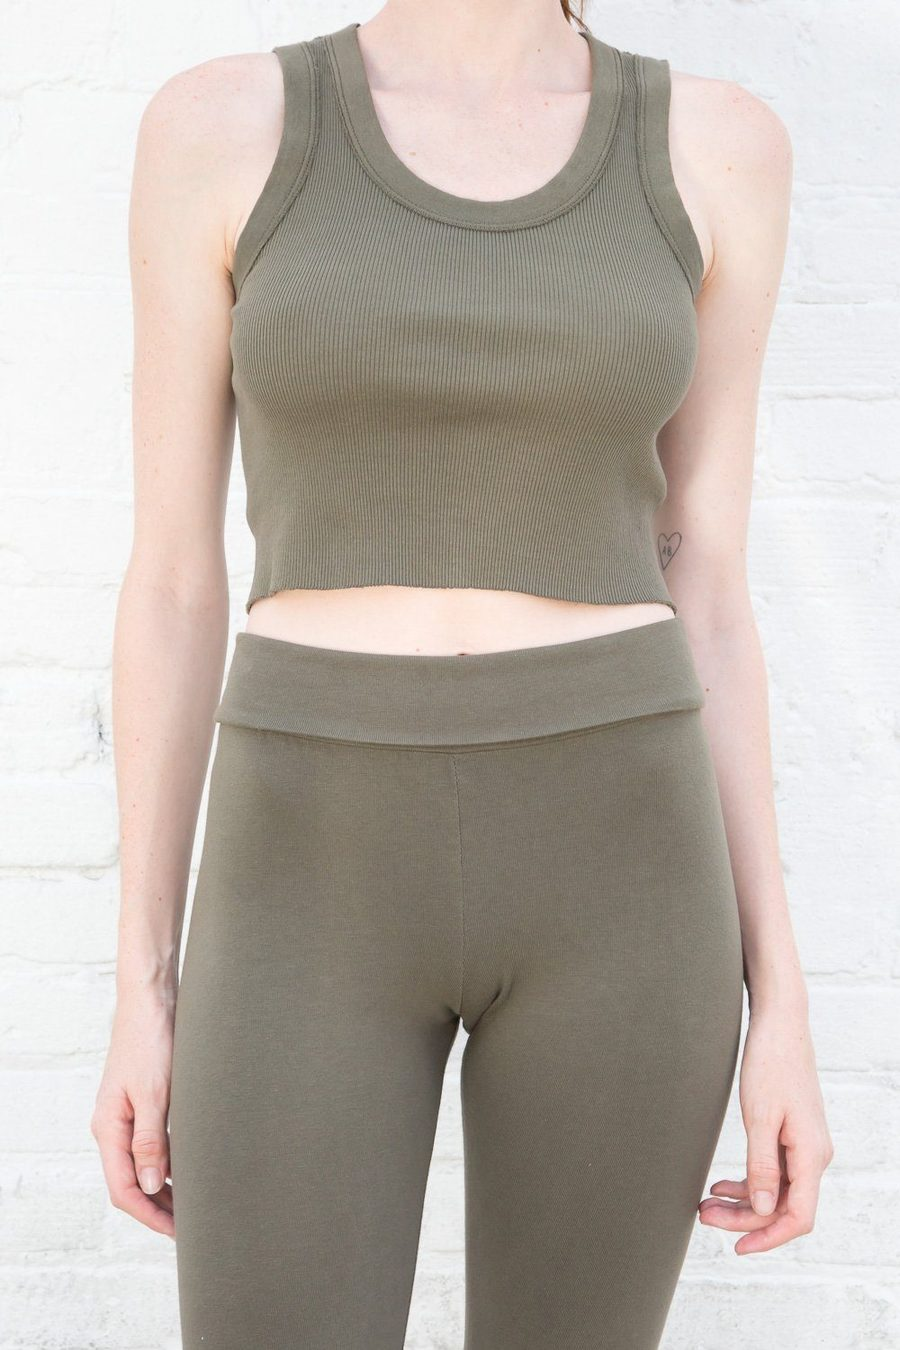 CONNOR TANK by Brandy Melville, available on brandymelville.com for $16 Kendall Jenner Top Exact Product